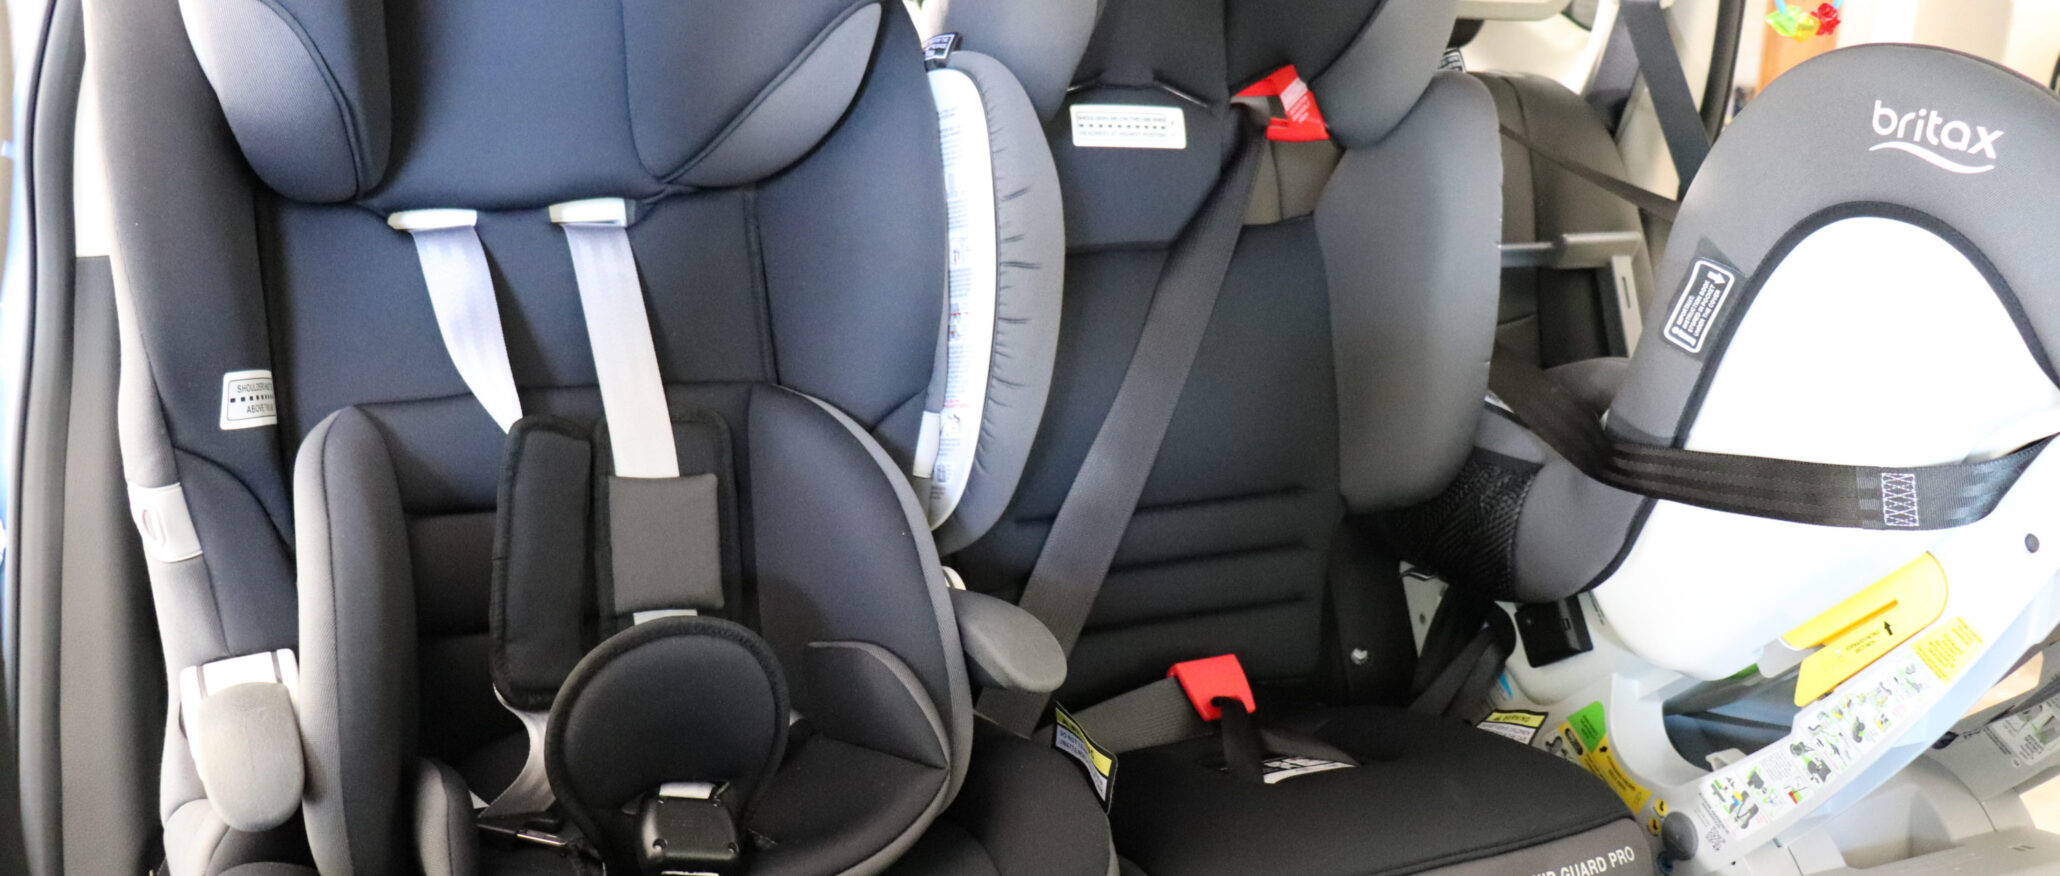 The Nissan X-Trail will fit three child seats across the middle row